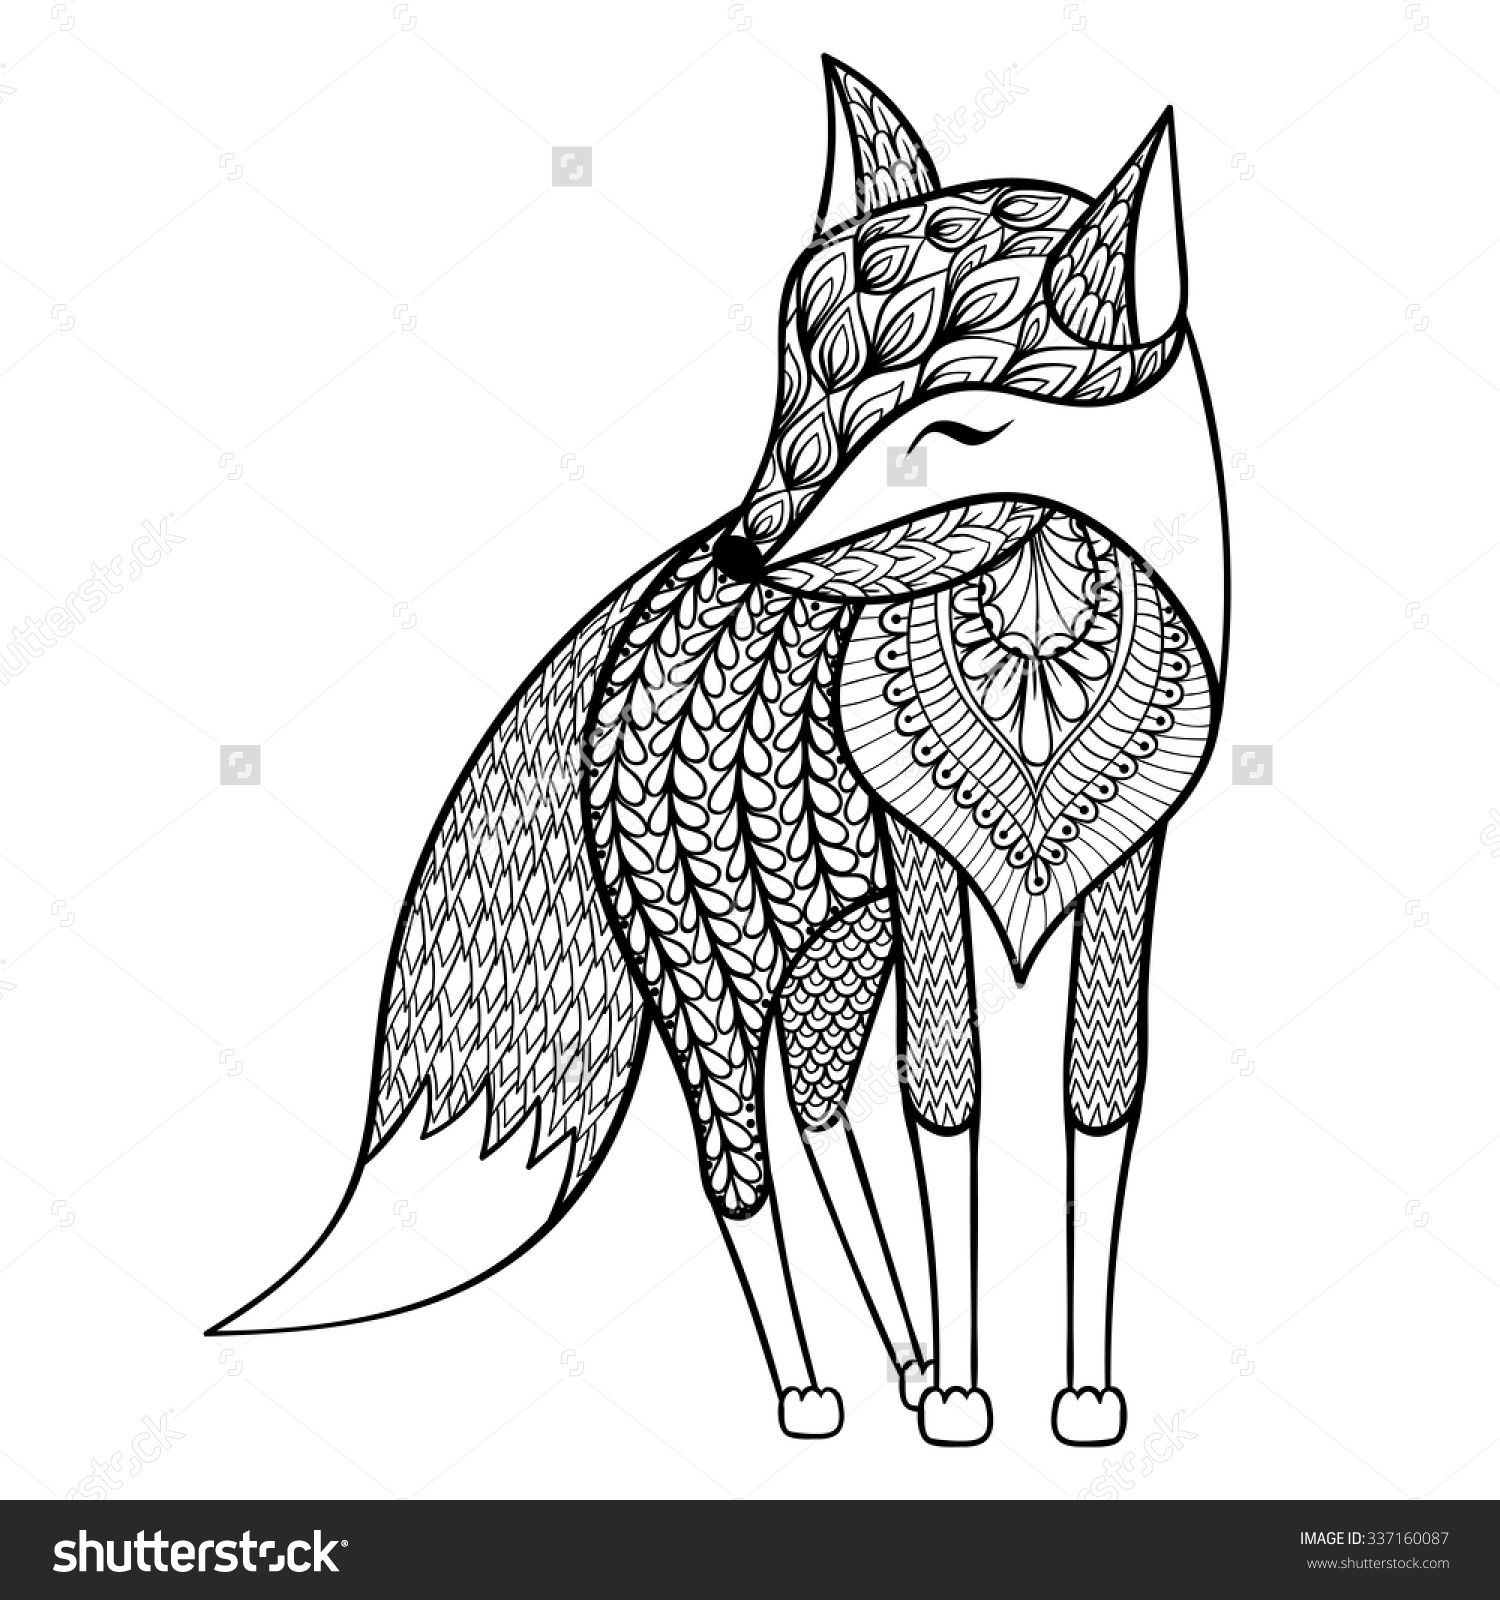 Free printable zentangle coloring pages for adults - Zentangle Vector Happy Fox For Adult Anti Stress Coloring Pages Ornamental Tribal Patterned Illustration For